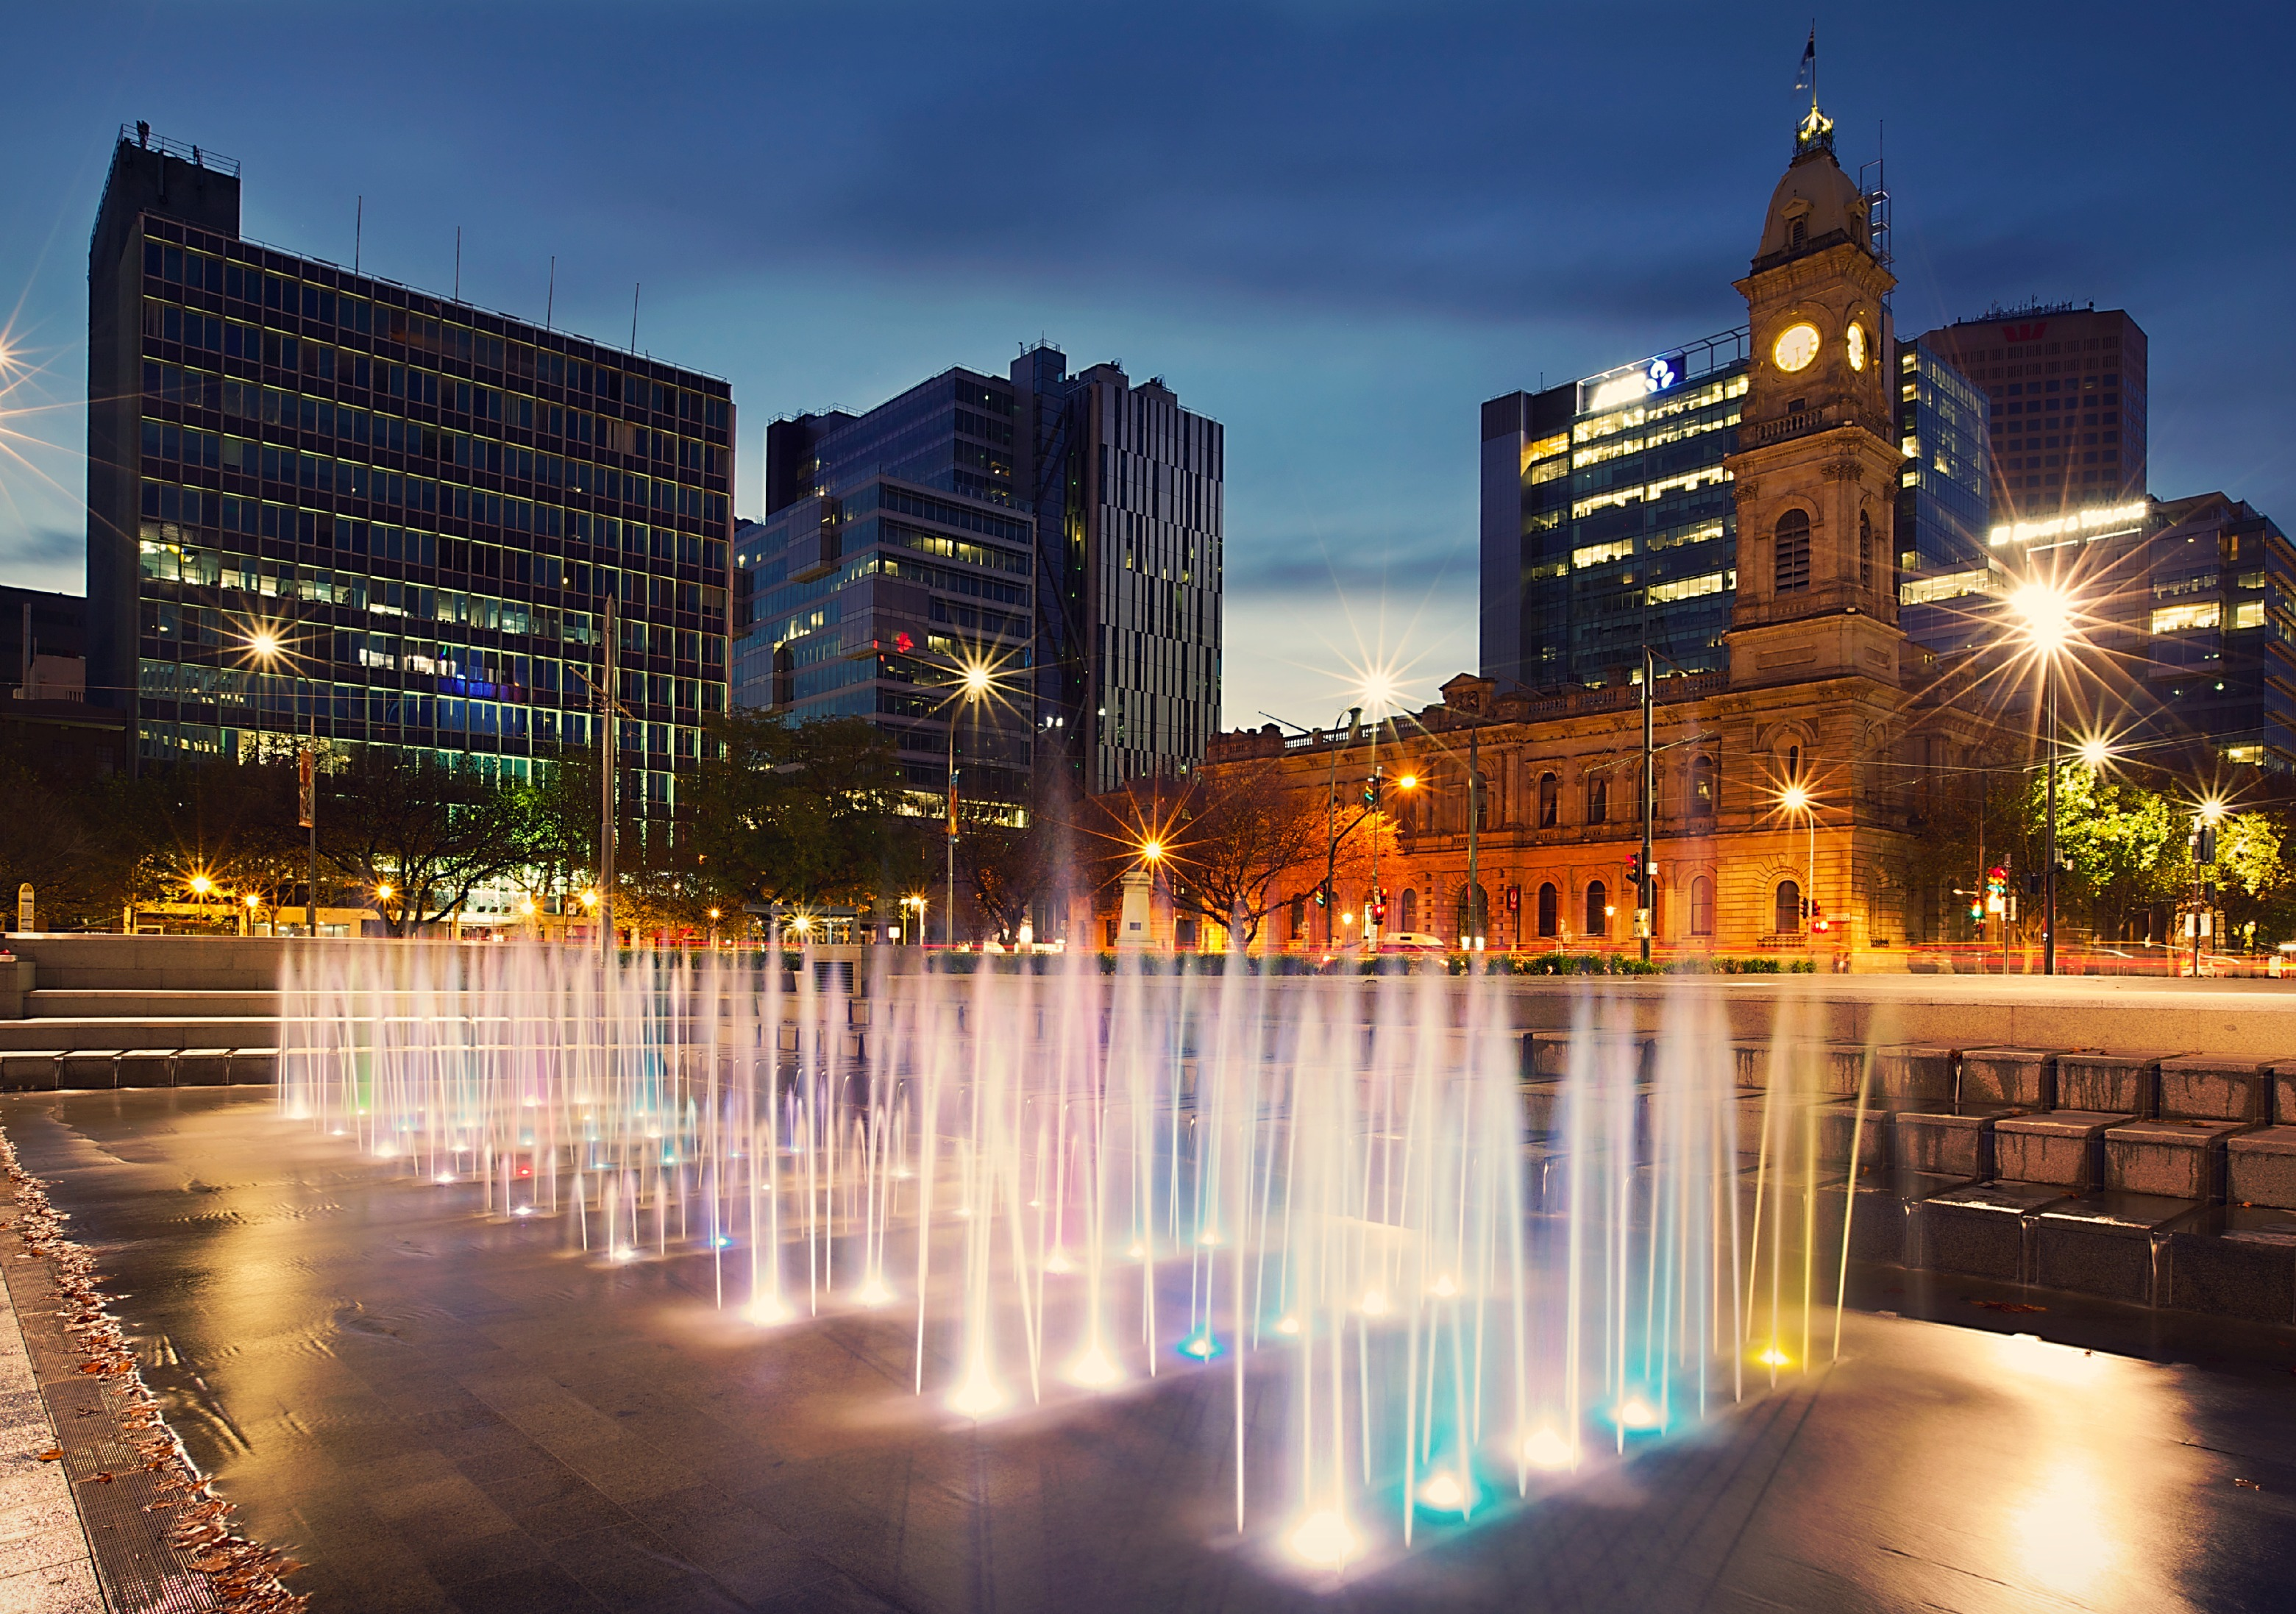 adelaide now - HD3121×2194